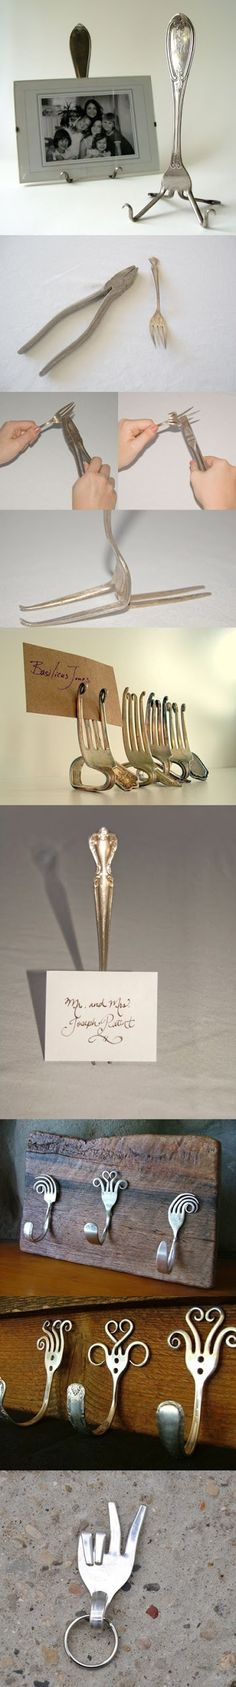 """This is harder than it looks! wondering if heating the forks would make it more pliable?  """"Fork"""" art."""